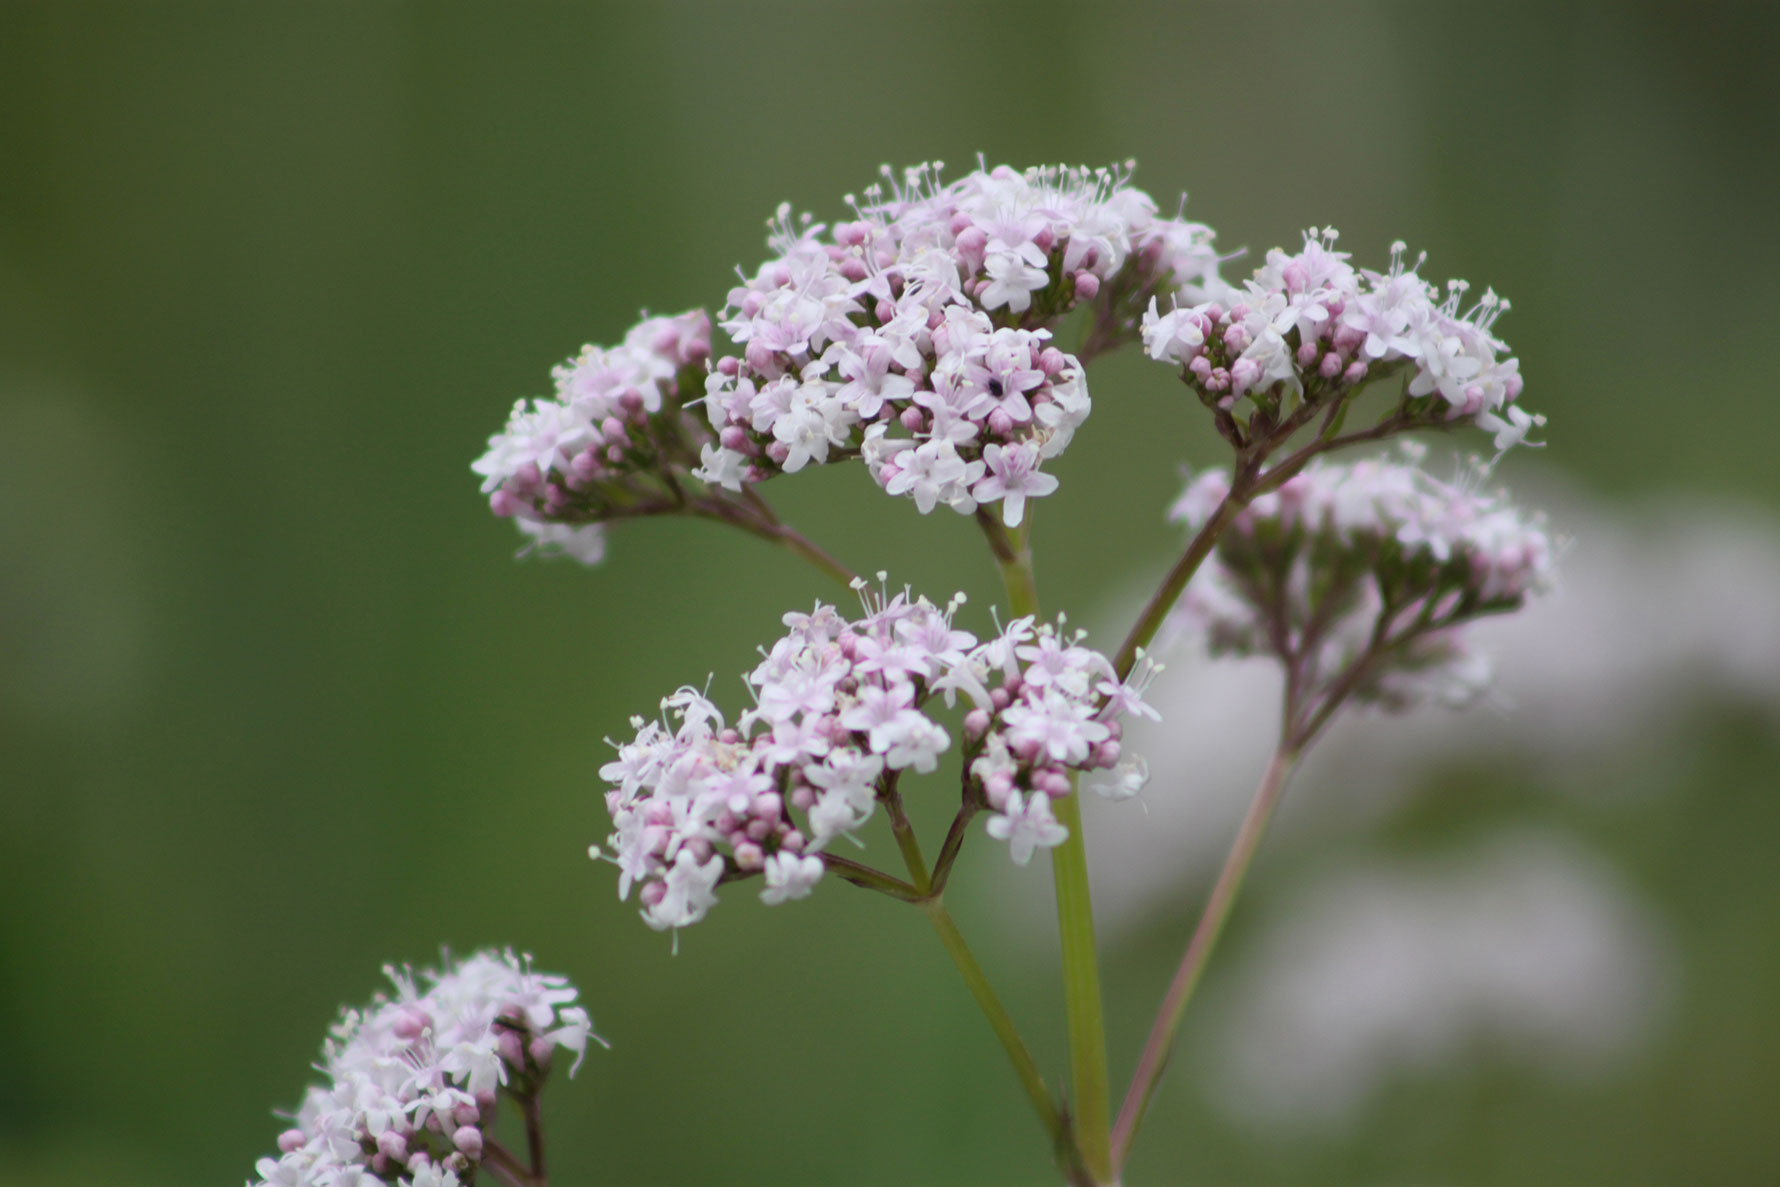 A close-up of light pink valerian flowers